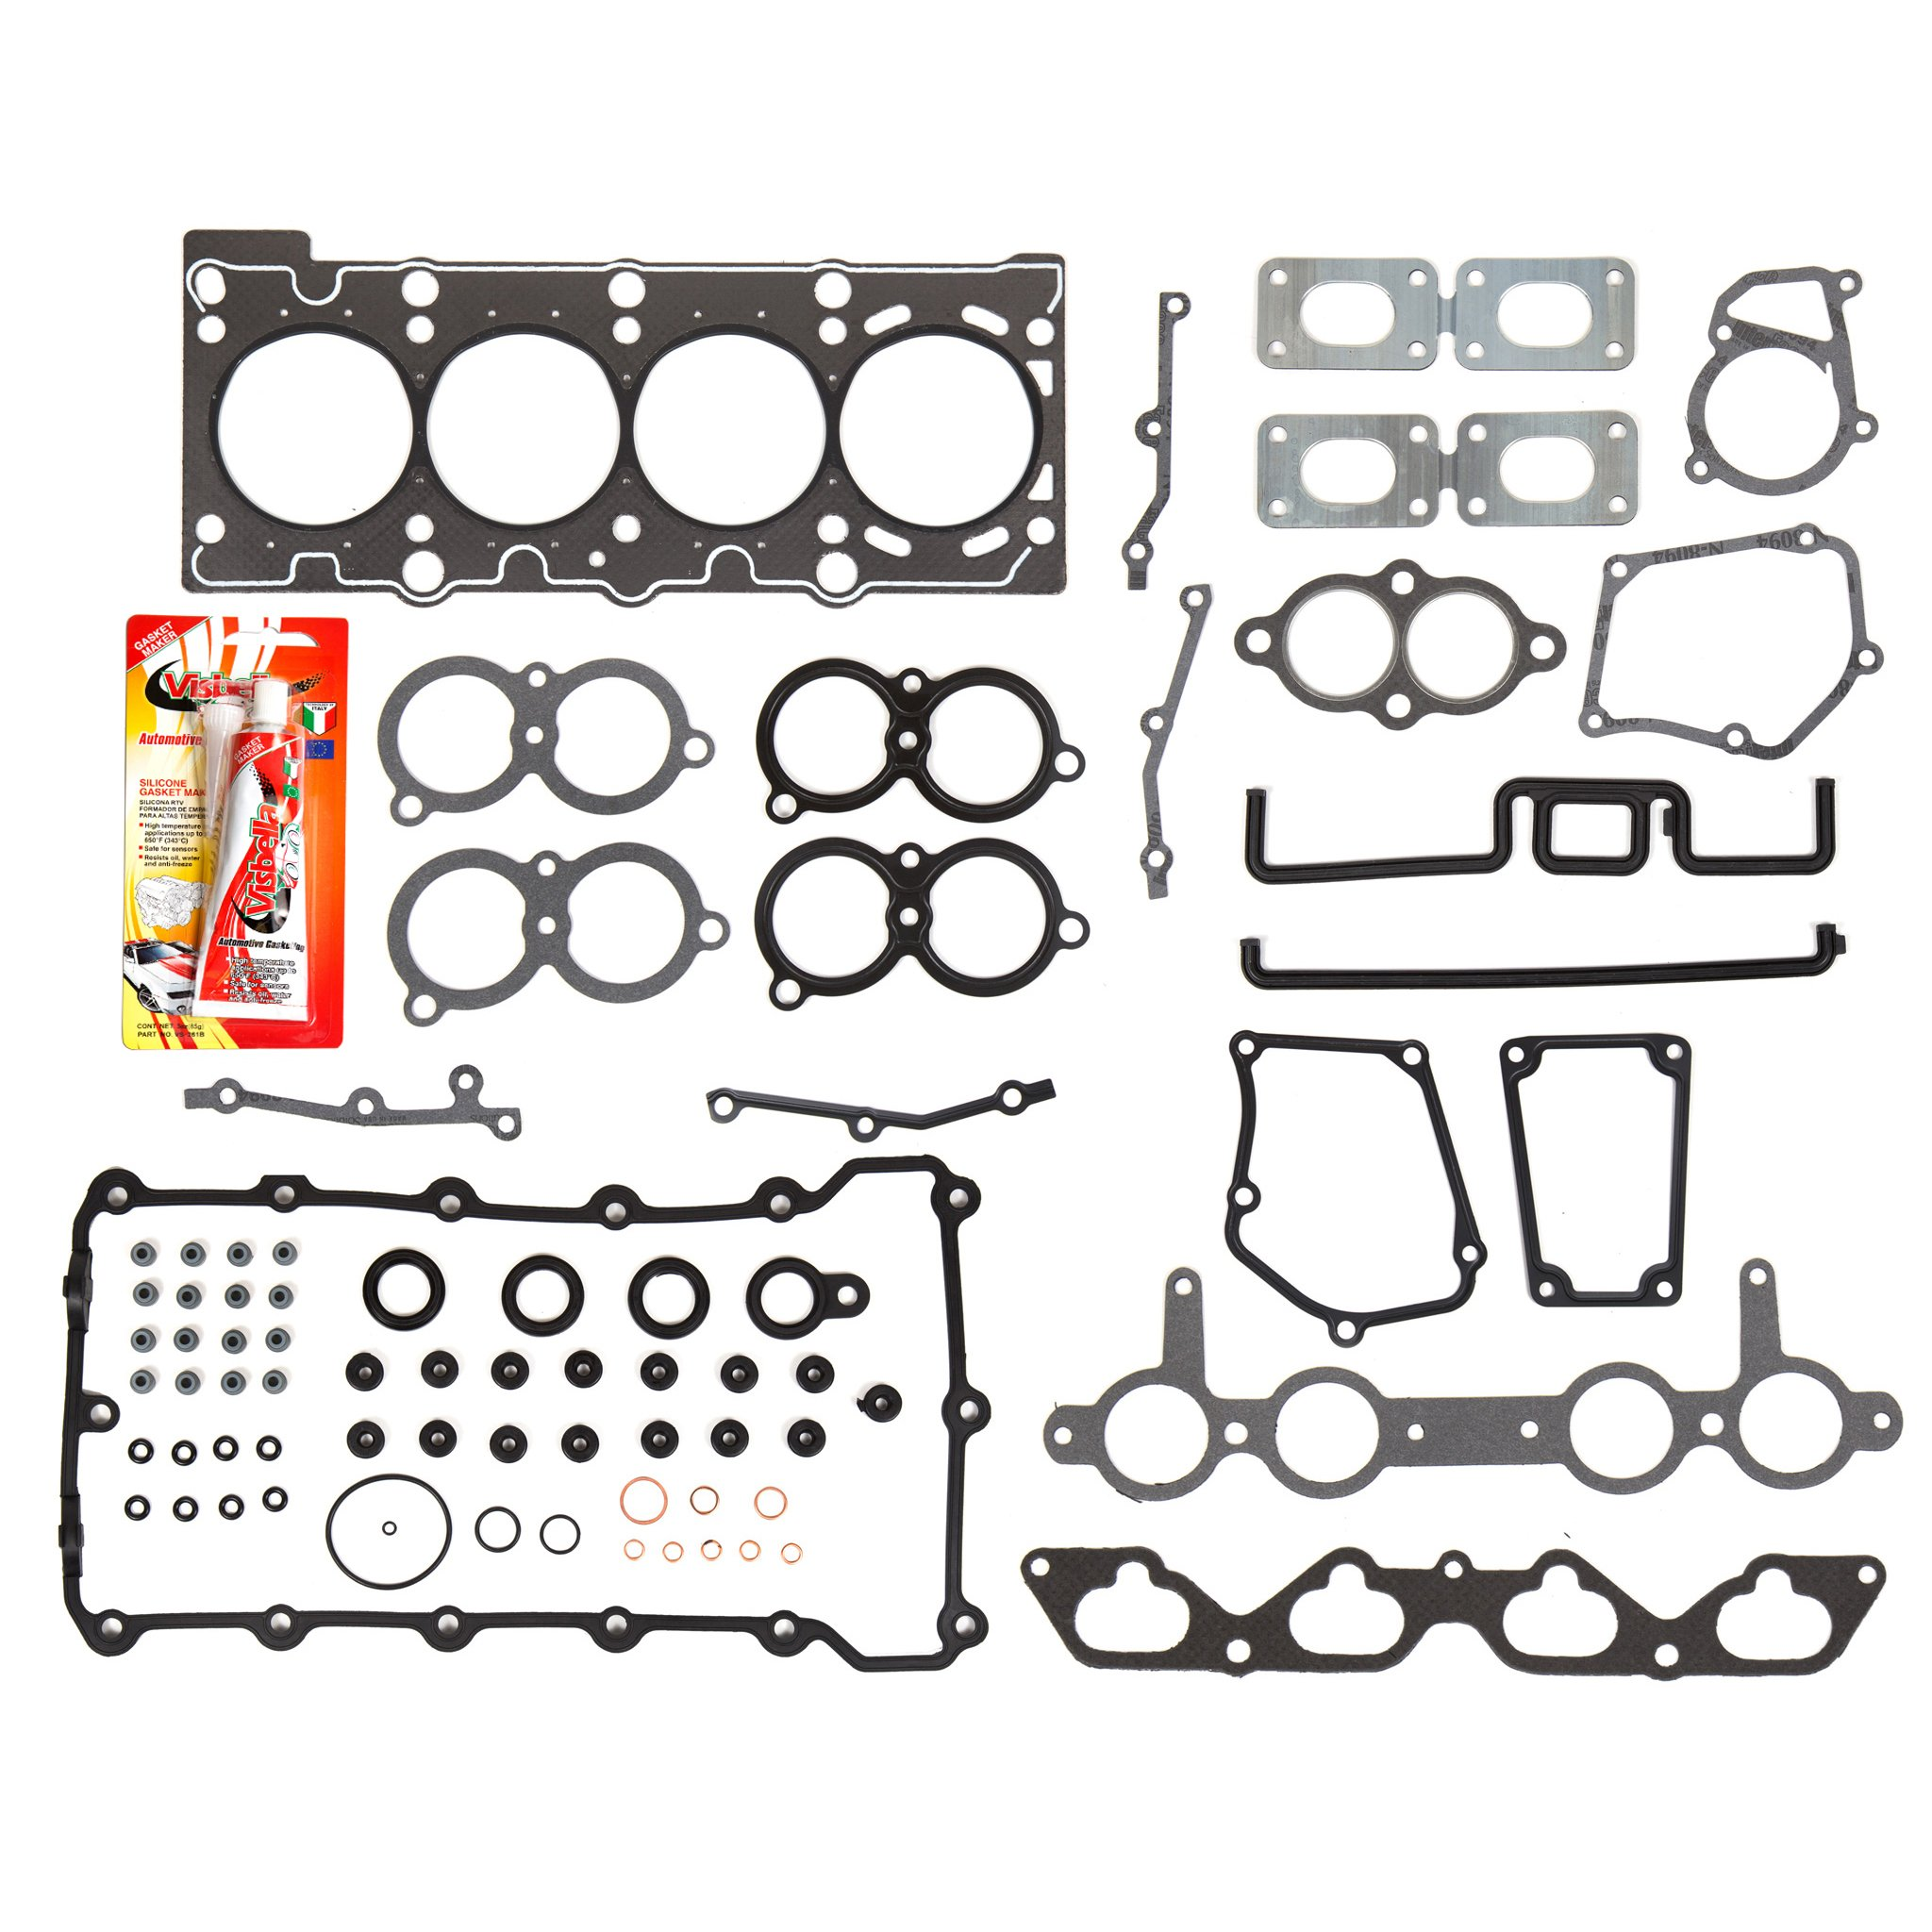 Eh X1 Mls Cylinder Head Gasket Set For Audi Volkswagen